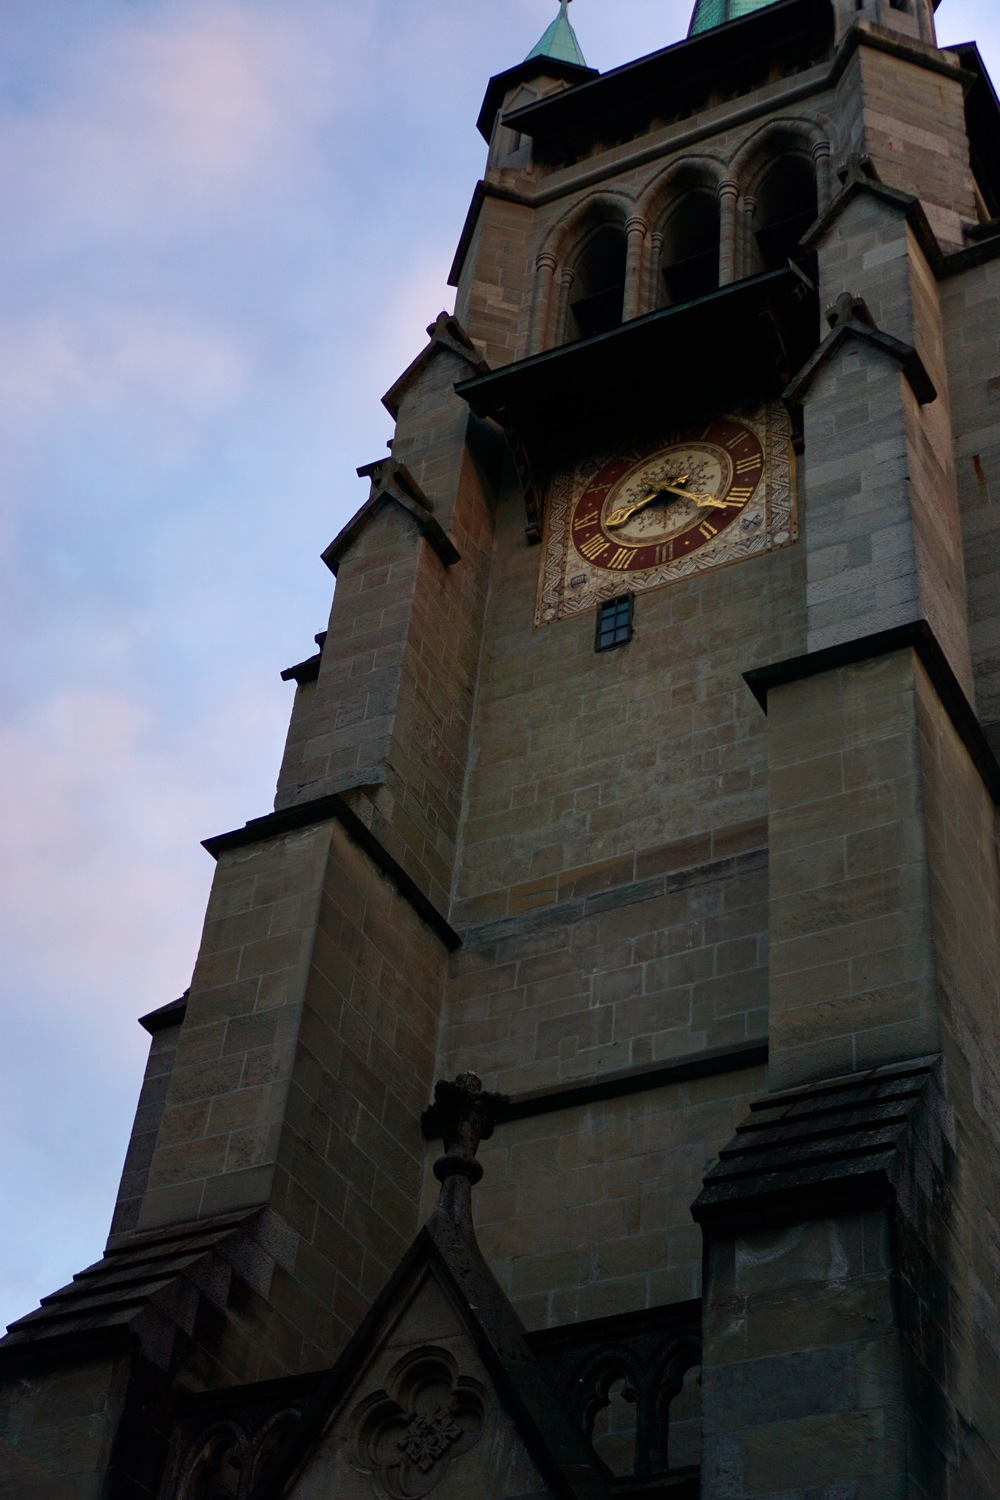 The Lausanne Cathedral bell tower